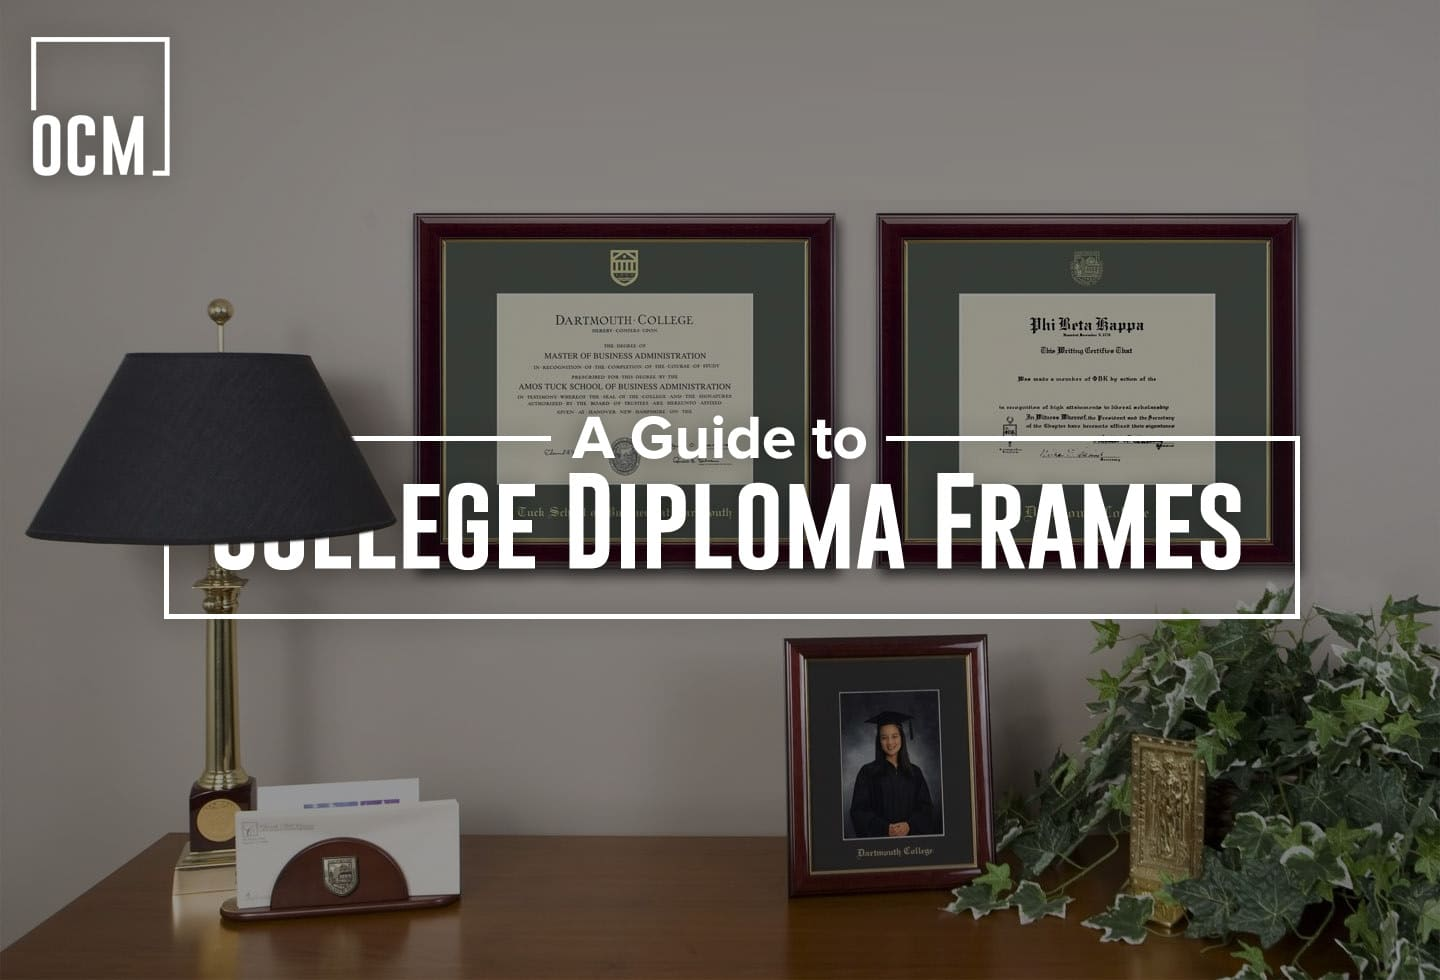 A guide to college diploma frames